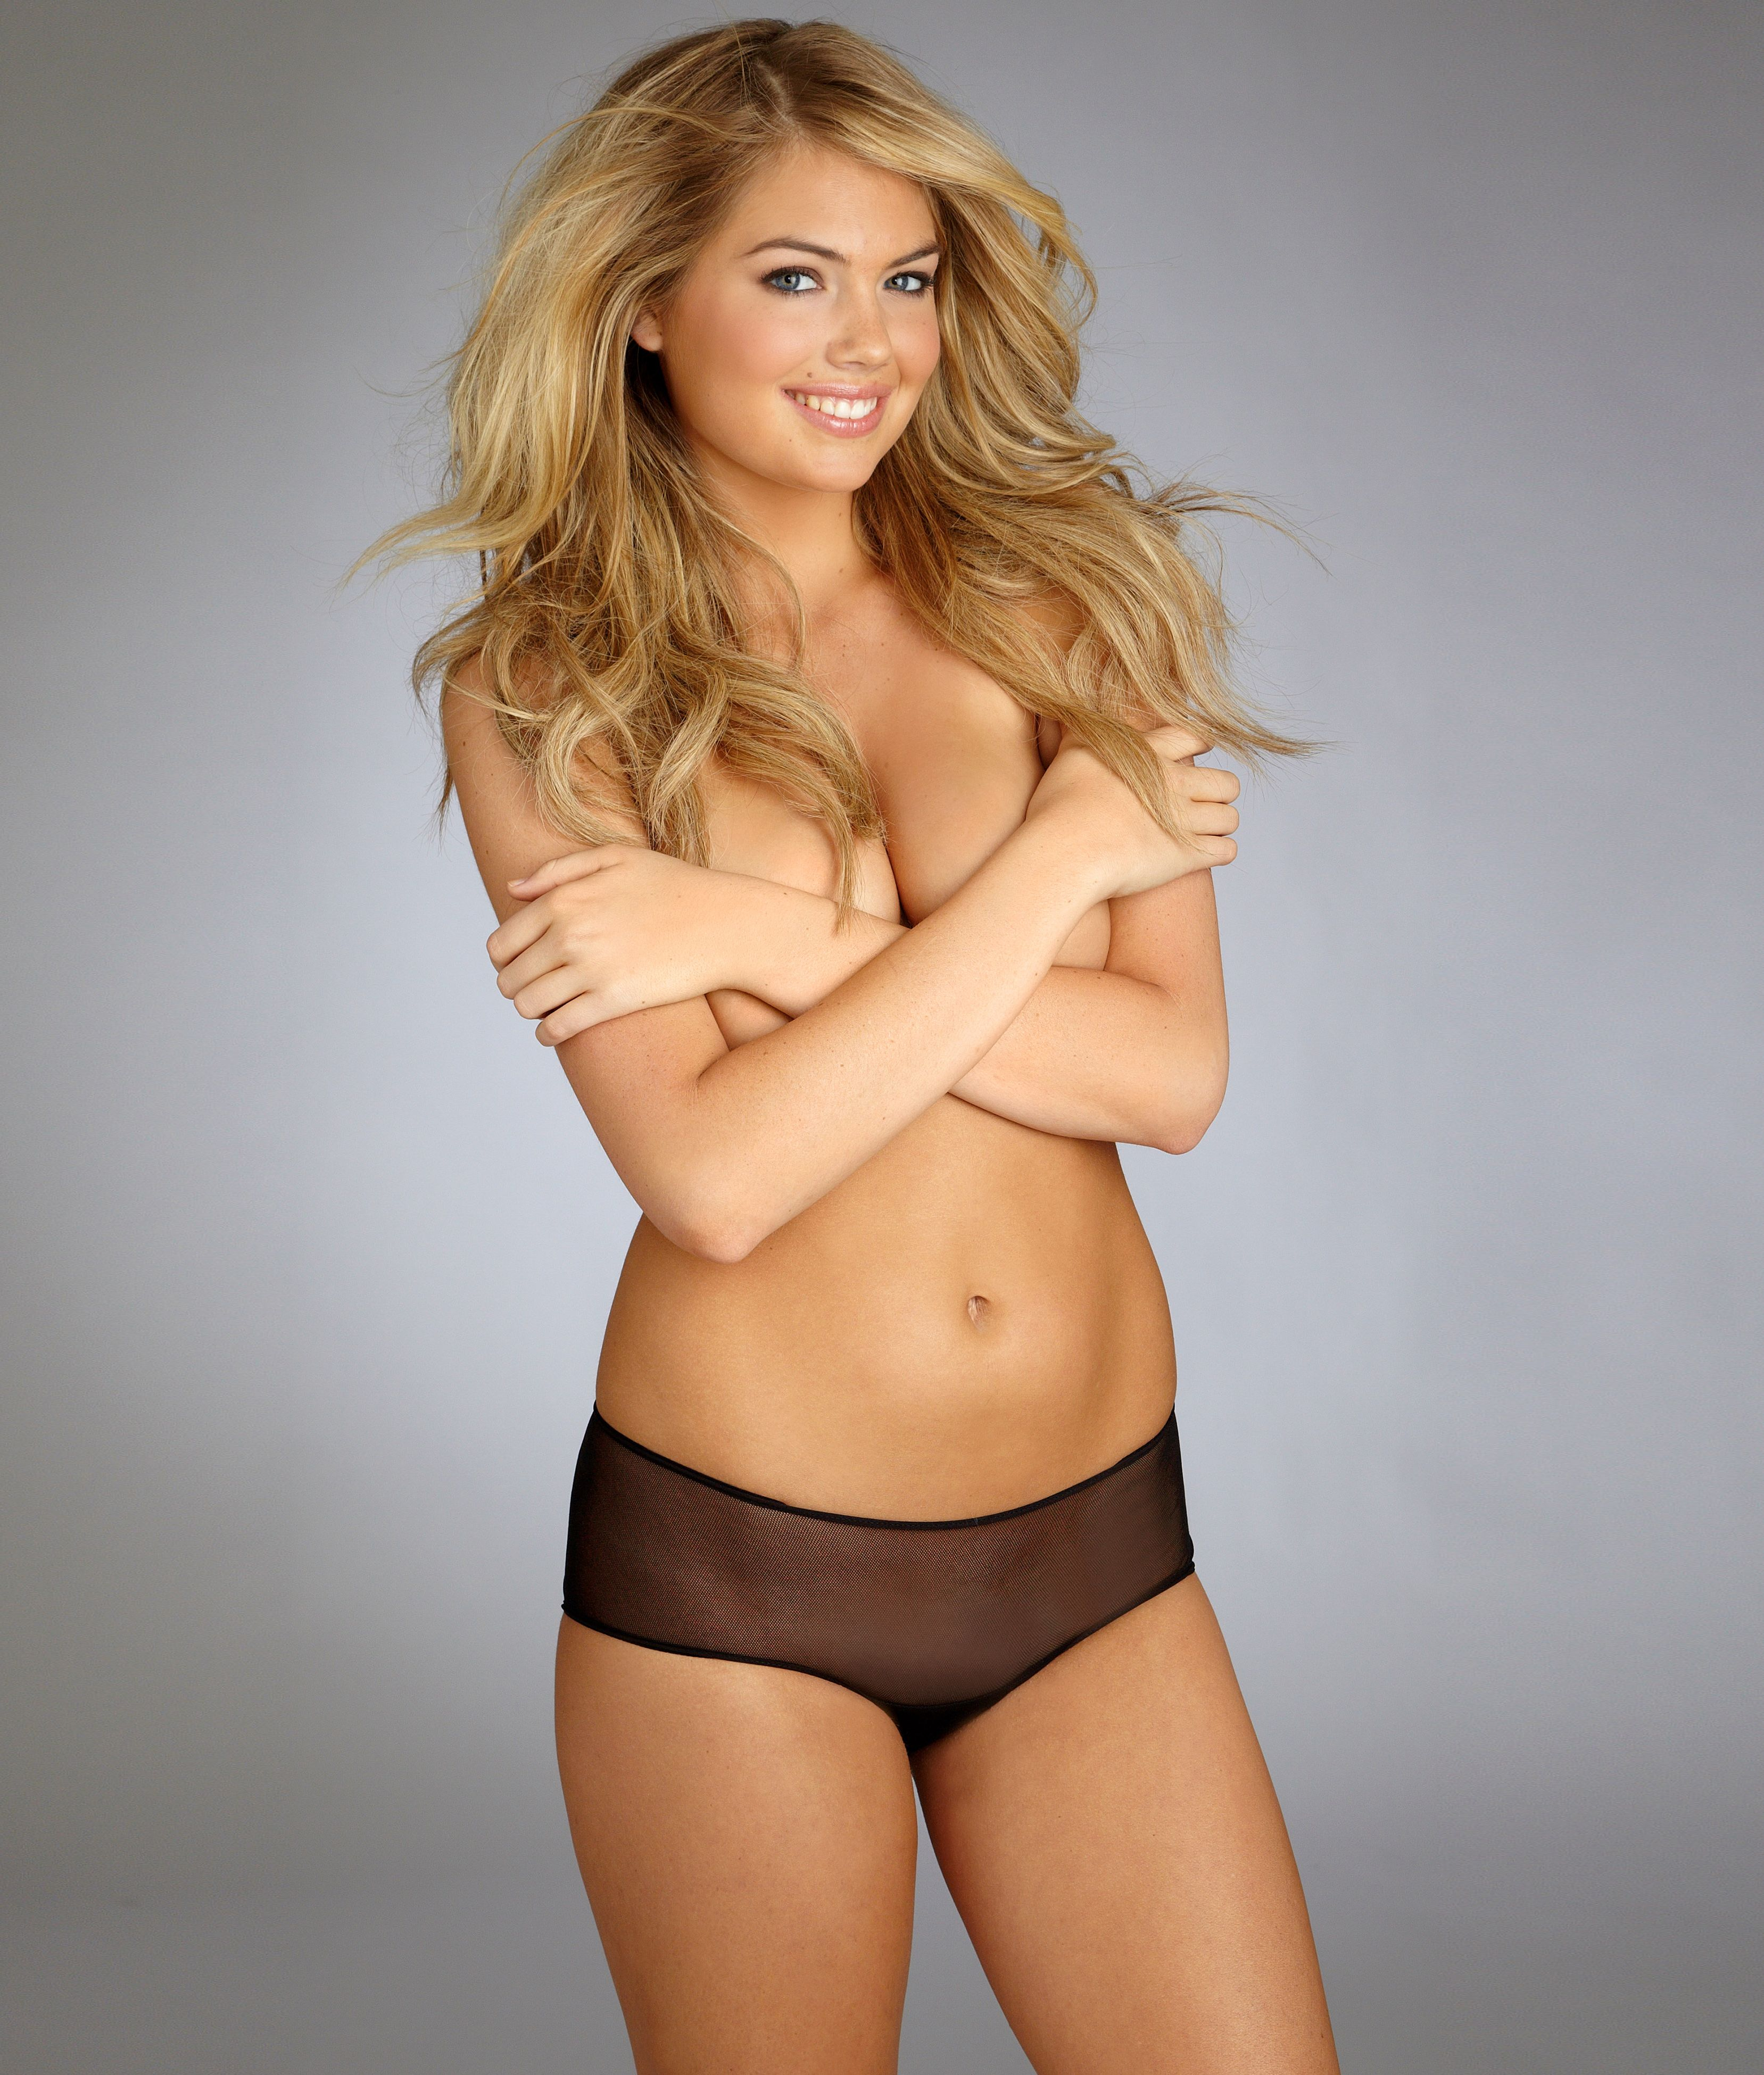 Kate Upton Nude Pictures. Rating = 9.13/10